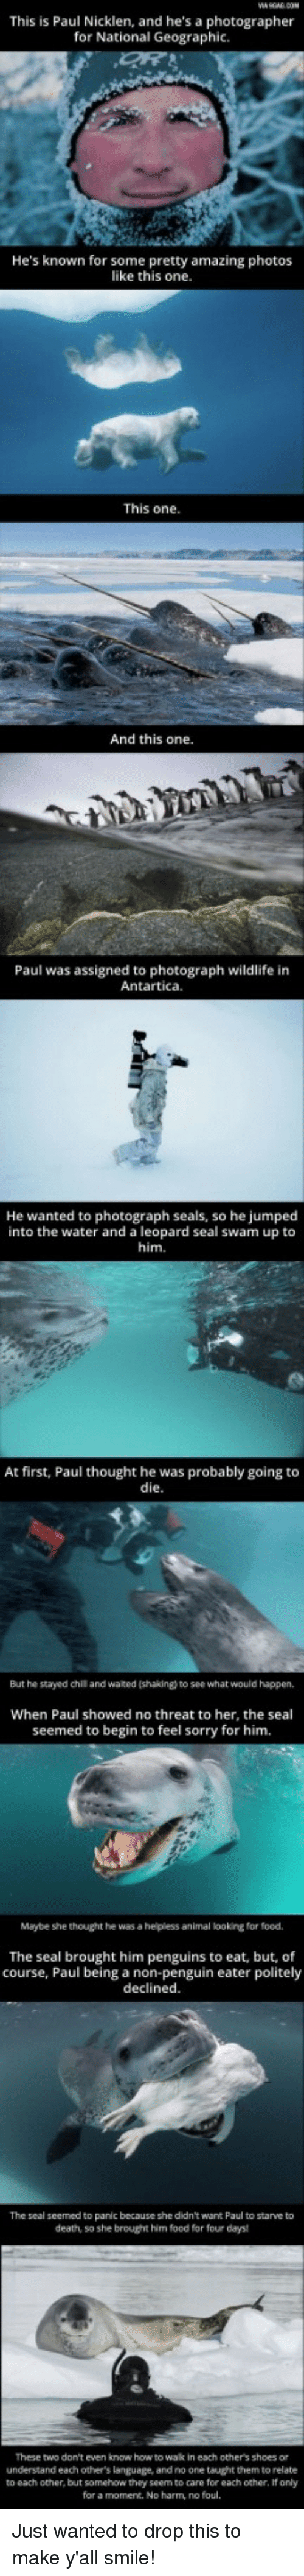 leopard: This is Paul Nicklen, and he's a photographer  for National Geographic.  He's known for some pretty amazing photos  like this one  This one  And this one.  Paul was assigned to photograph wildlife in  Antartica.  He  wanted to photograph seals, so he jumped  into the water and a leopard seal swam up to  him.  At first, Paul thought he was probably going to  die  But he stayed chil and waited (shaking) to see what would happen,  When Paul showed no threat to her, the seal  seemed to begin to feel sorry for him.  Maybe she thought he was a helpless animal looking for food.  The seal brought him penguins to eat, but, of  course, Paul being a non-penguin eater politely  declined.  The seal seemed to panic because she didn't want Paul to starve to  death, so she brought him food for four days  These two don't even know how to wak in each other's shoes or  understand each others language, and no one taught them to relate  to each other, but somehow they seem to care for each other, If only  for a moment. No harm, no foul. Just wanted to drop this to make y'all smile!